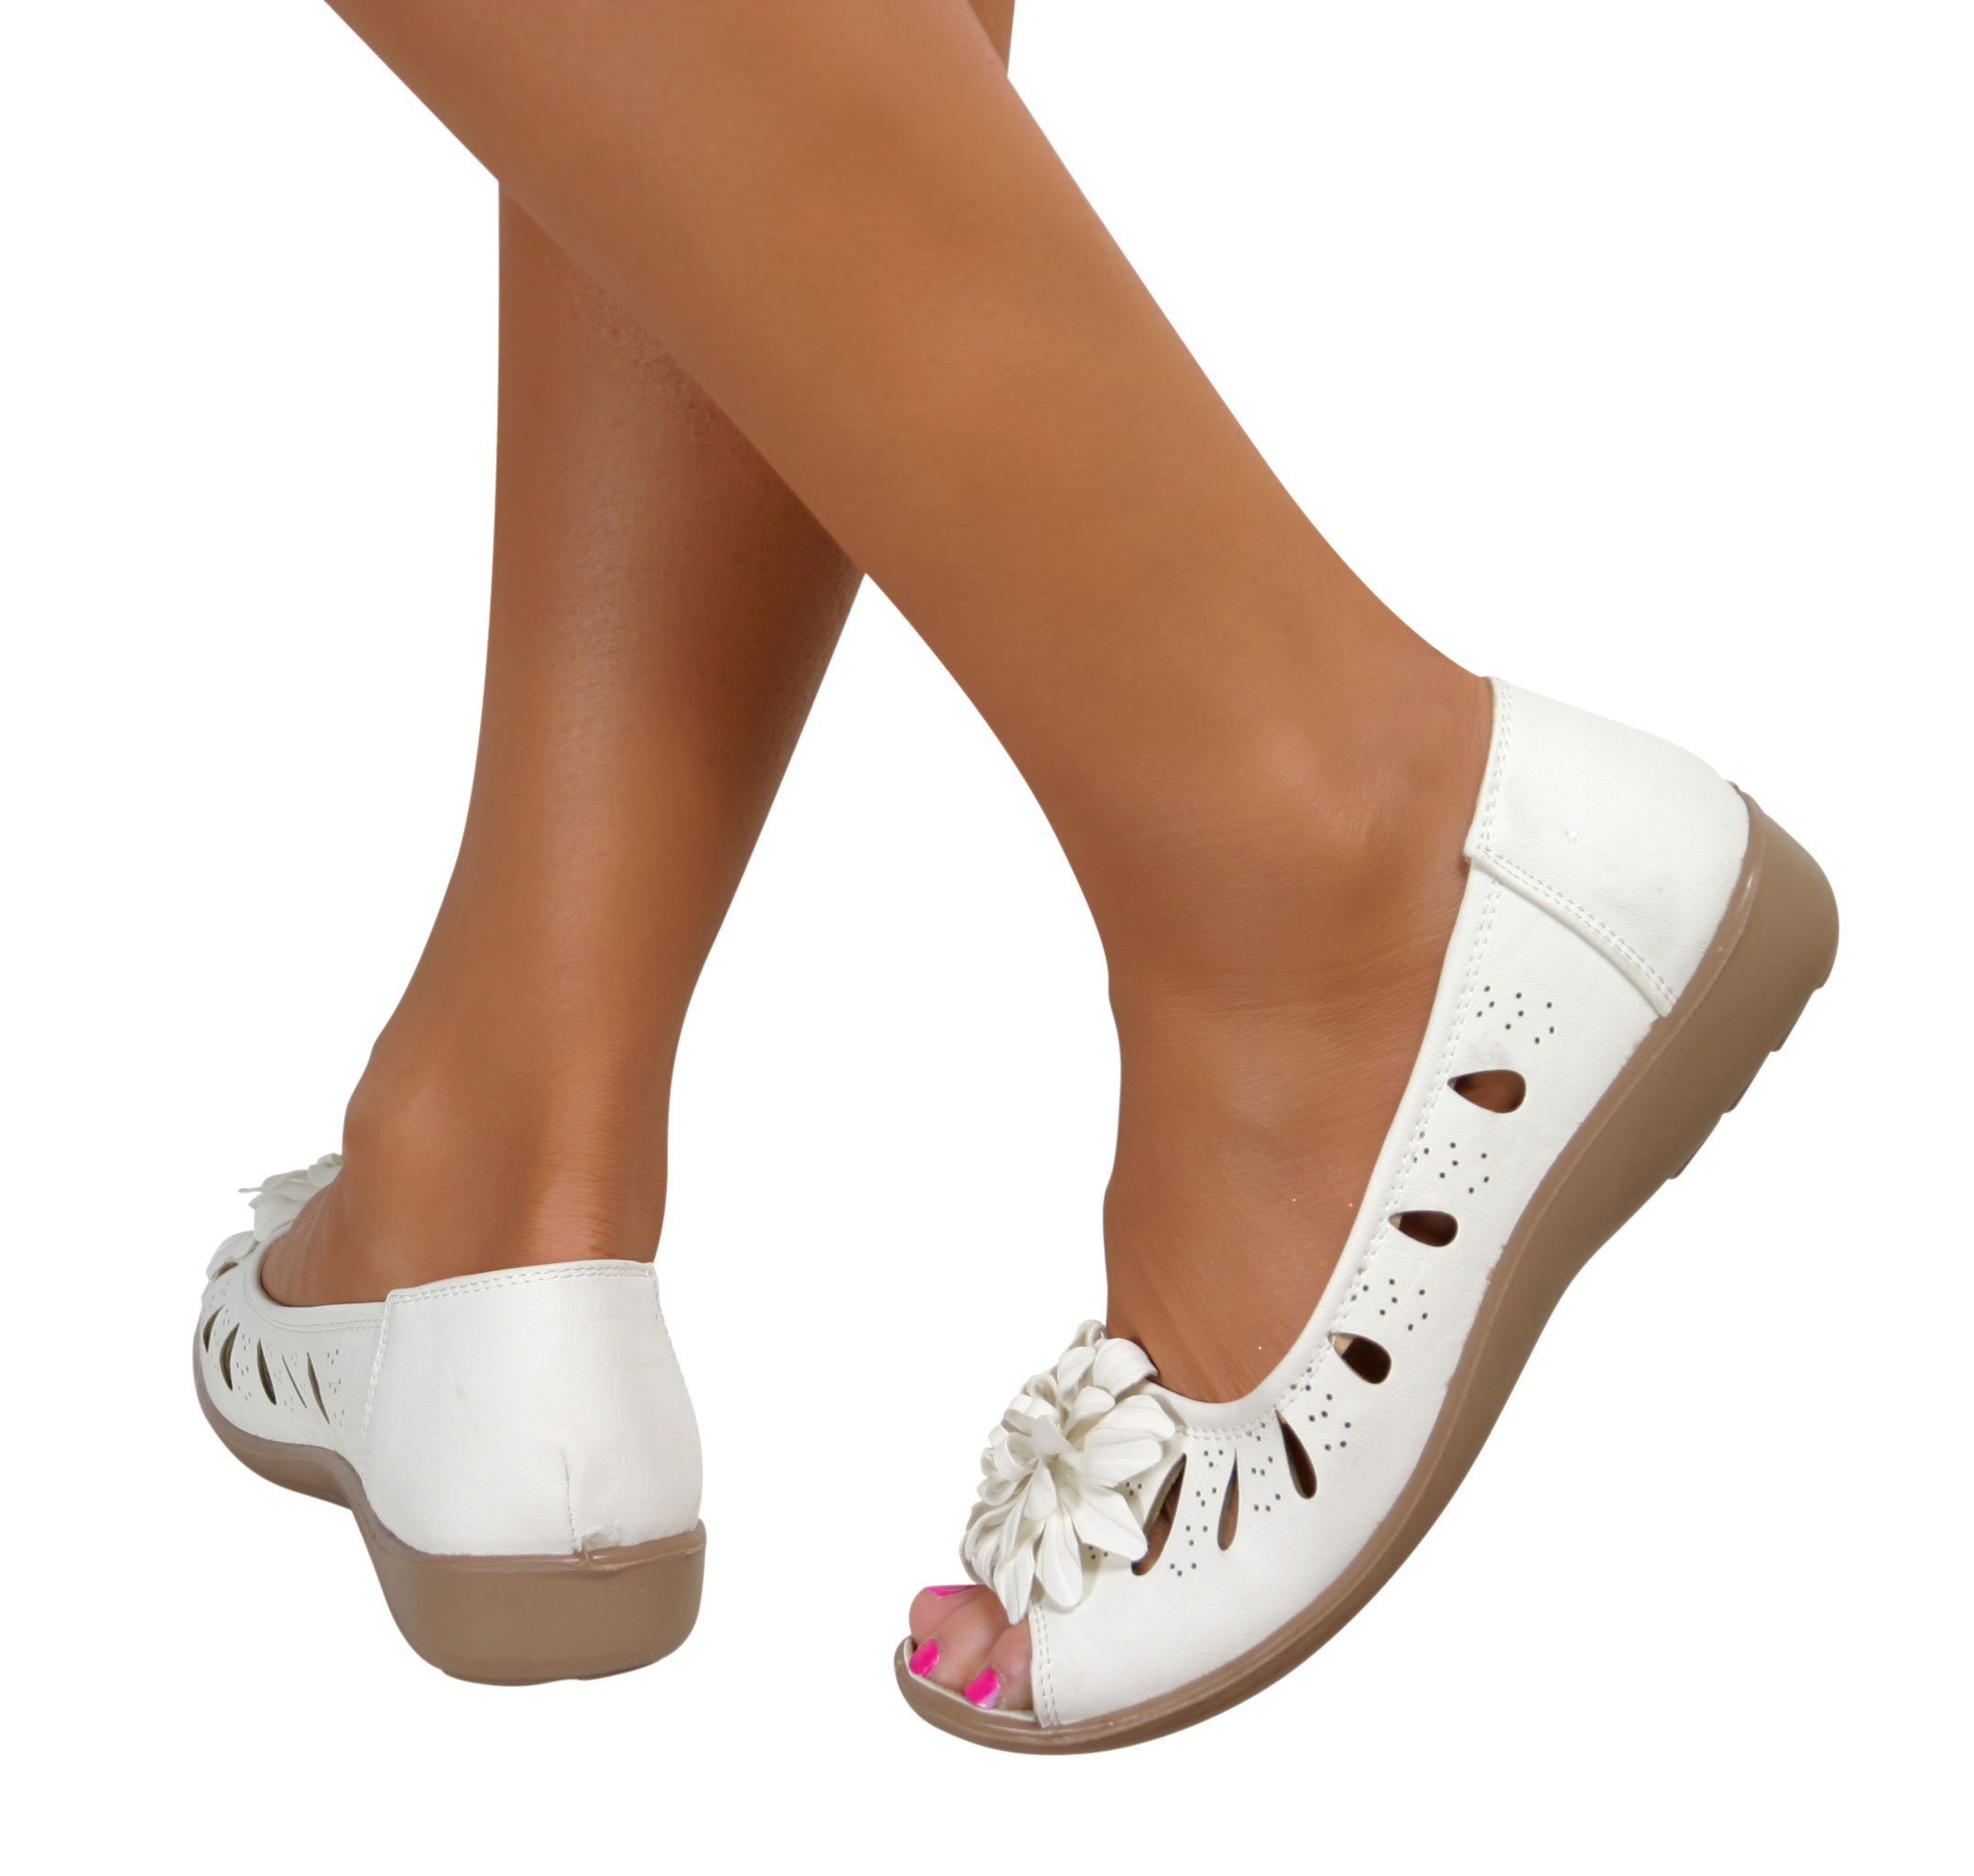 Box Toe Shoes Out Of Stype